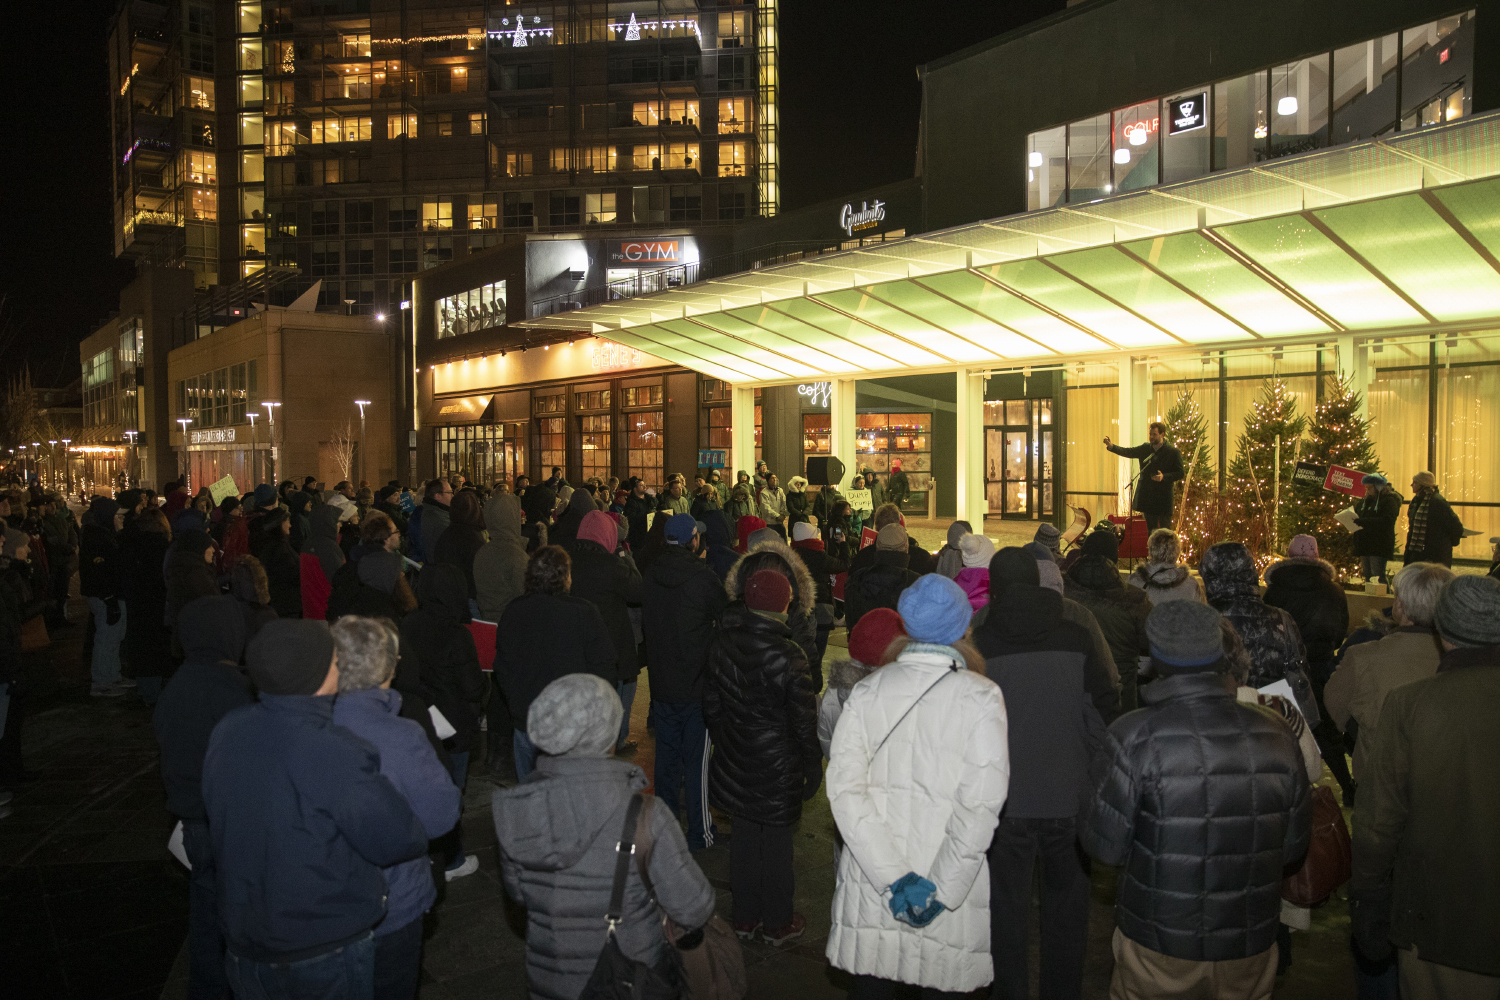 Attendees are seen gathering together during the Impeachment Rally on Tuesday, Dec. 17, 2019 at the Ped Mall in downtown Iowa City. Multiple speakers from the Iowa City area shared their opinions on President Trump's impeachment process. (Hannah Kinson/The Daily Iowan)